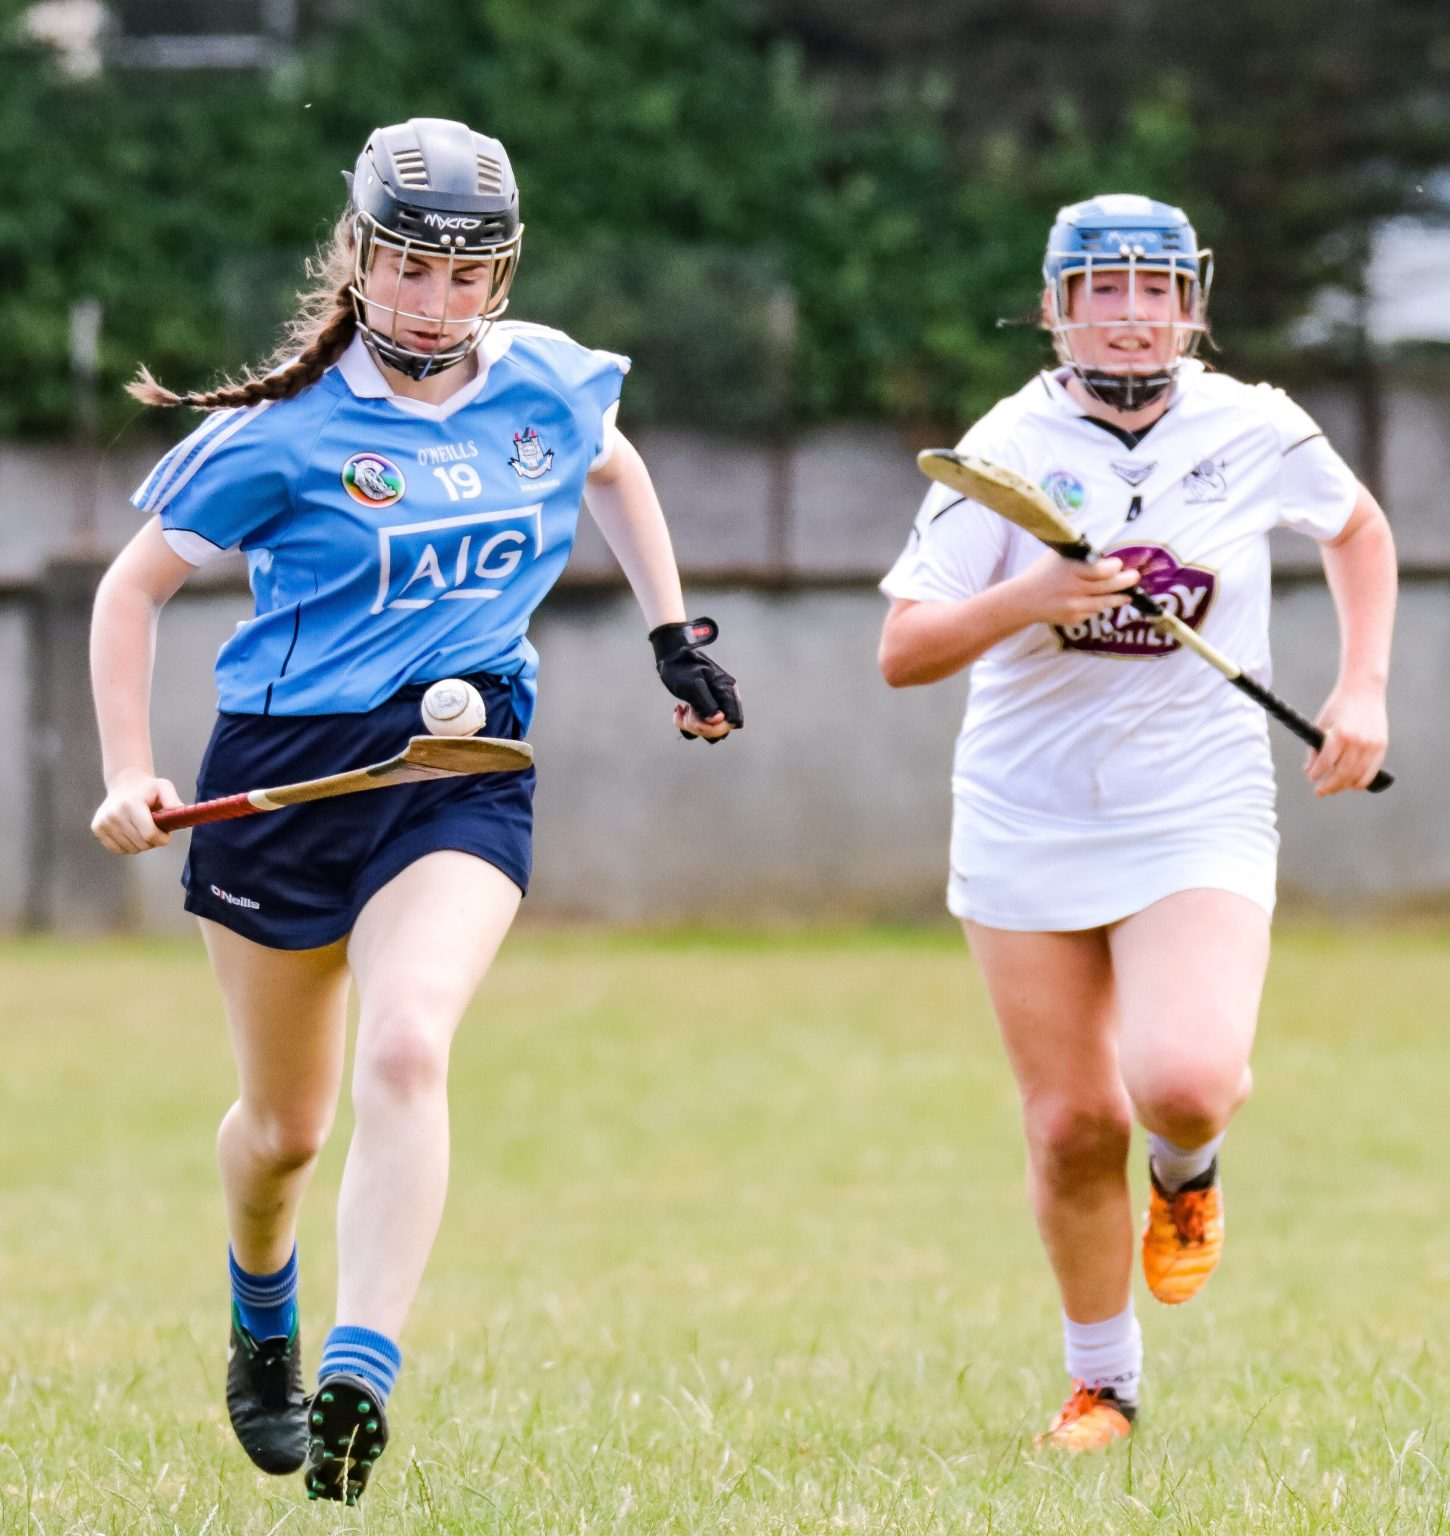 Dublin Minor Camogie Player in sky blue jersey races away with the ball balancing on her hurl from a Kildare player in a white jersey during Dublin second half scoring blitz